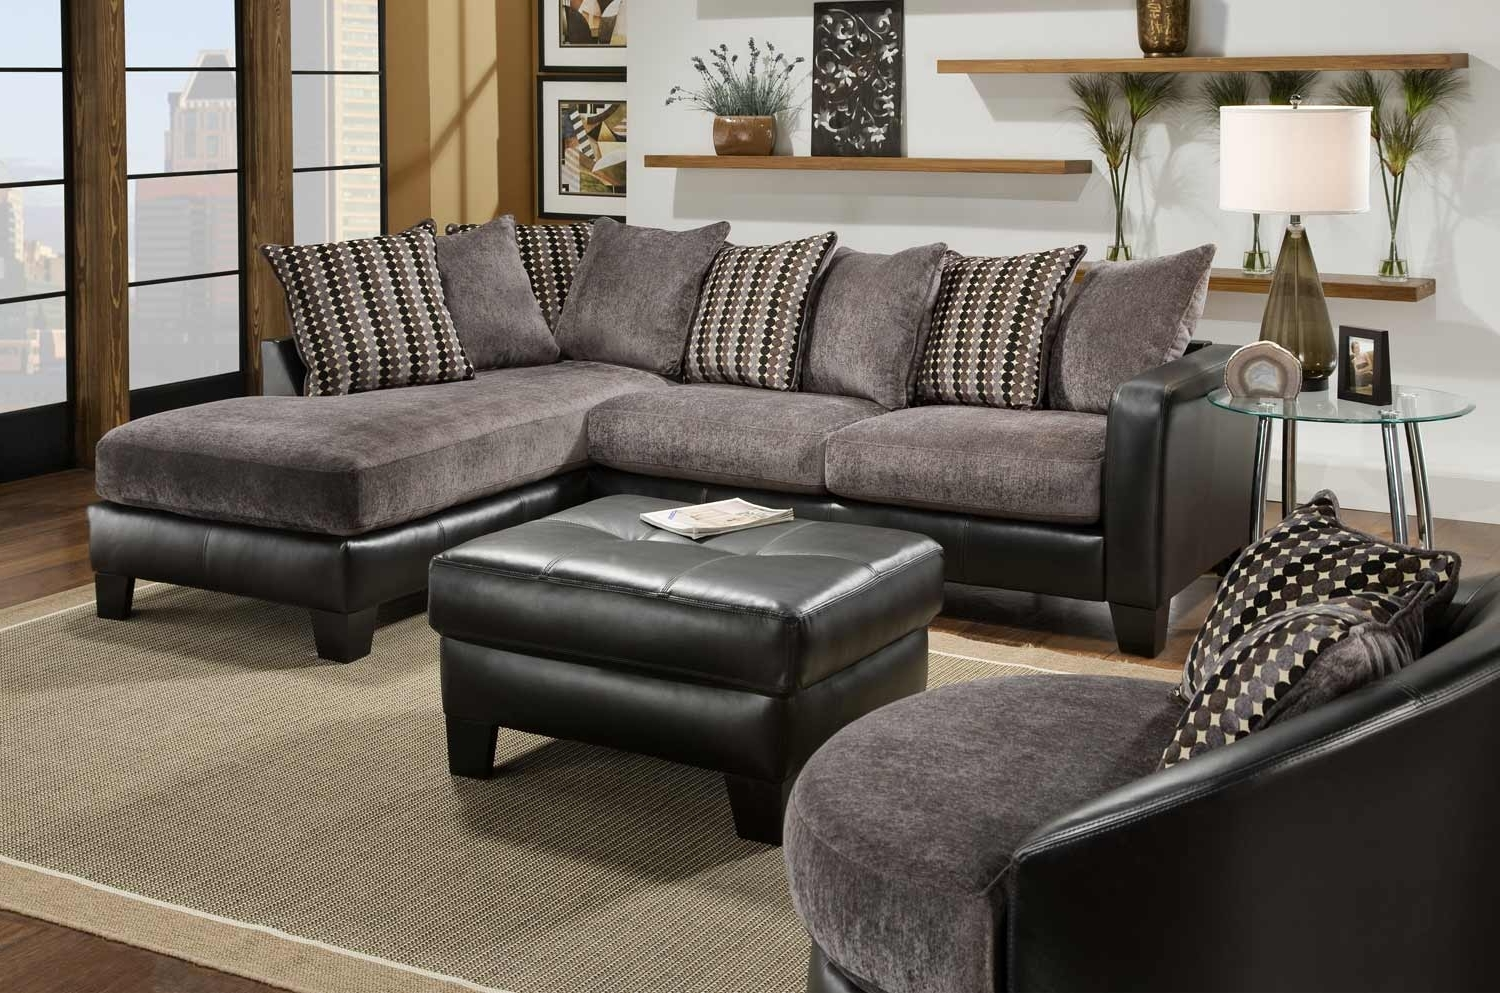 Most Recent Black Leather Sectionals With Ottoman Intended For Fascinating Picture Of Living Room Decoration Using L Shape (View 8 of 20)